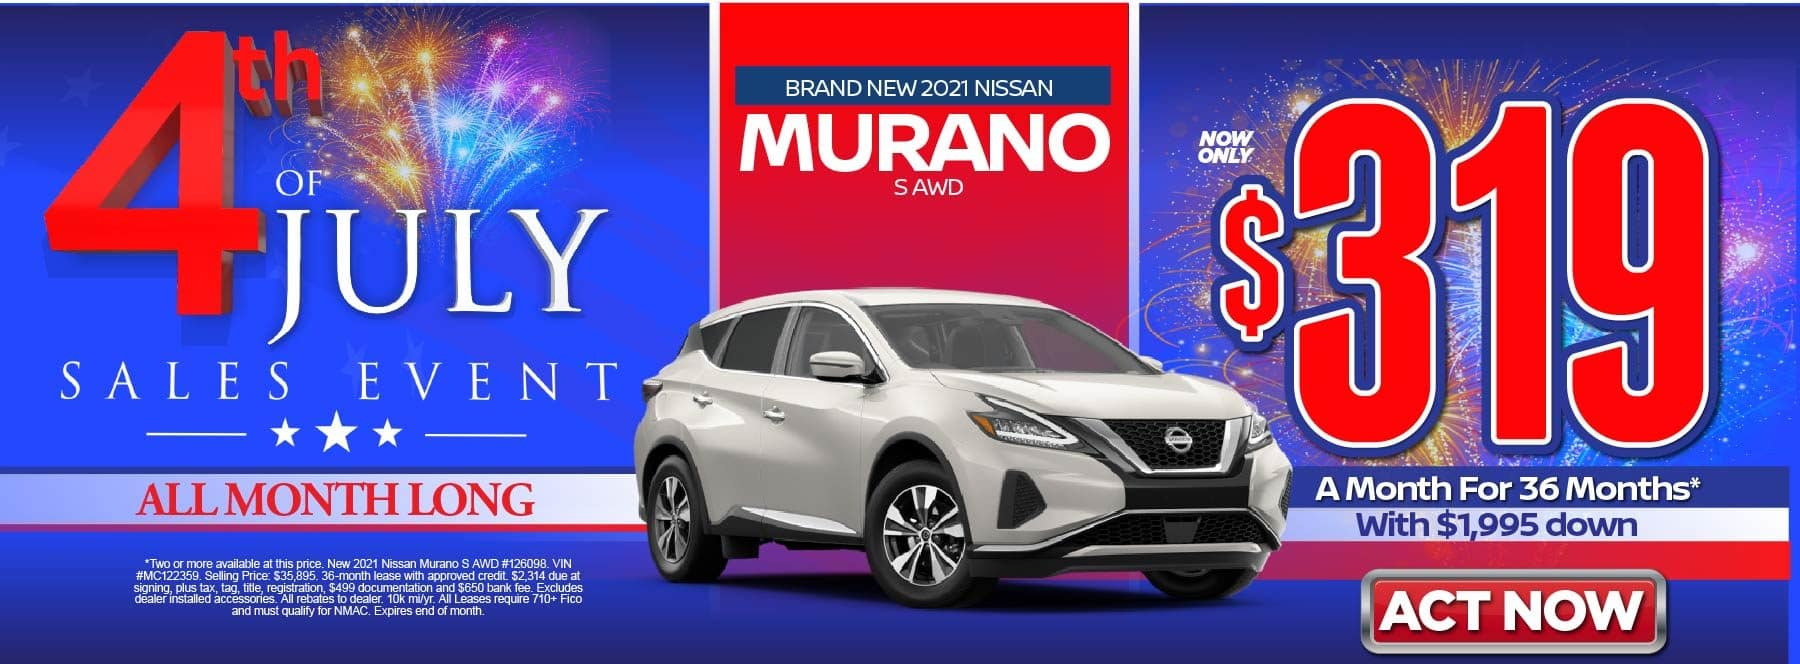 New 2021 Nissan Murano S AWD – Lease for $319/mo for 36 months with $1,995 Down* Act now.